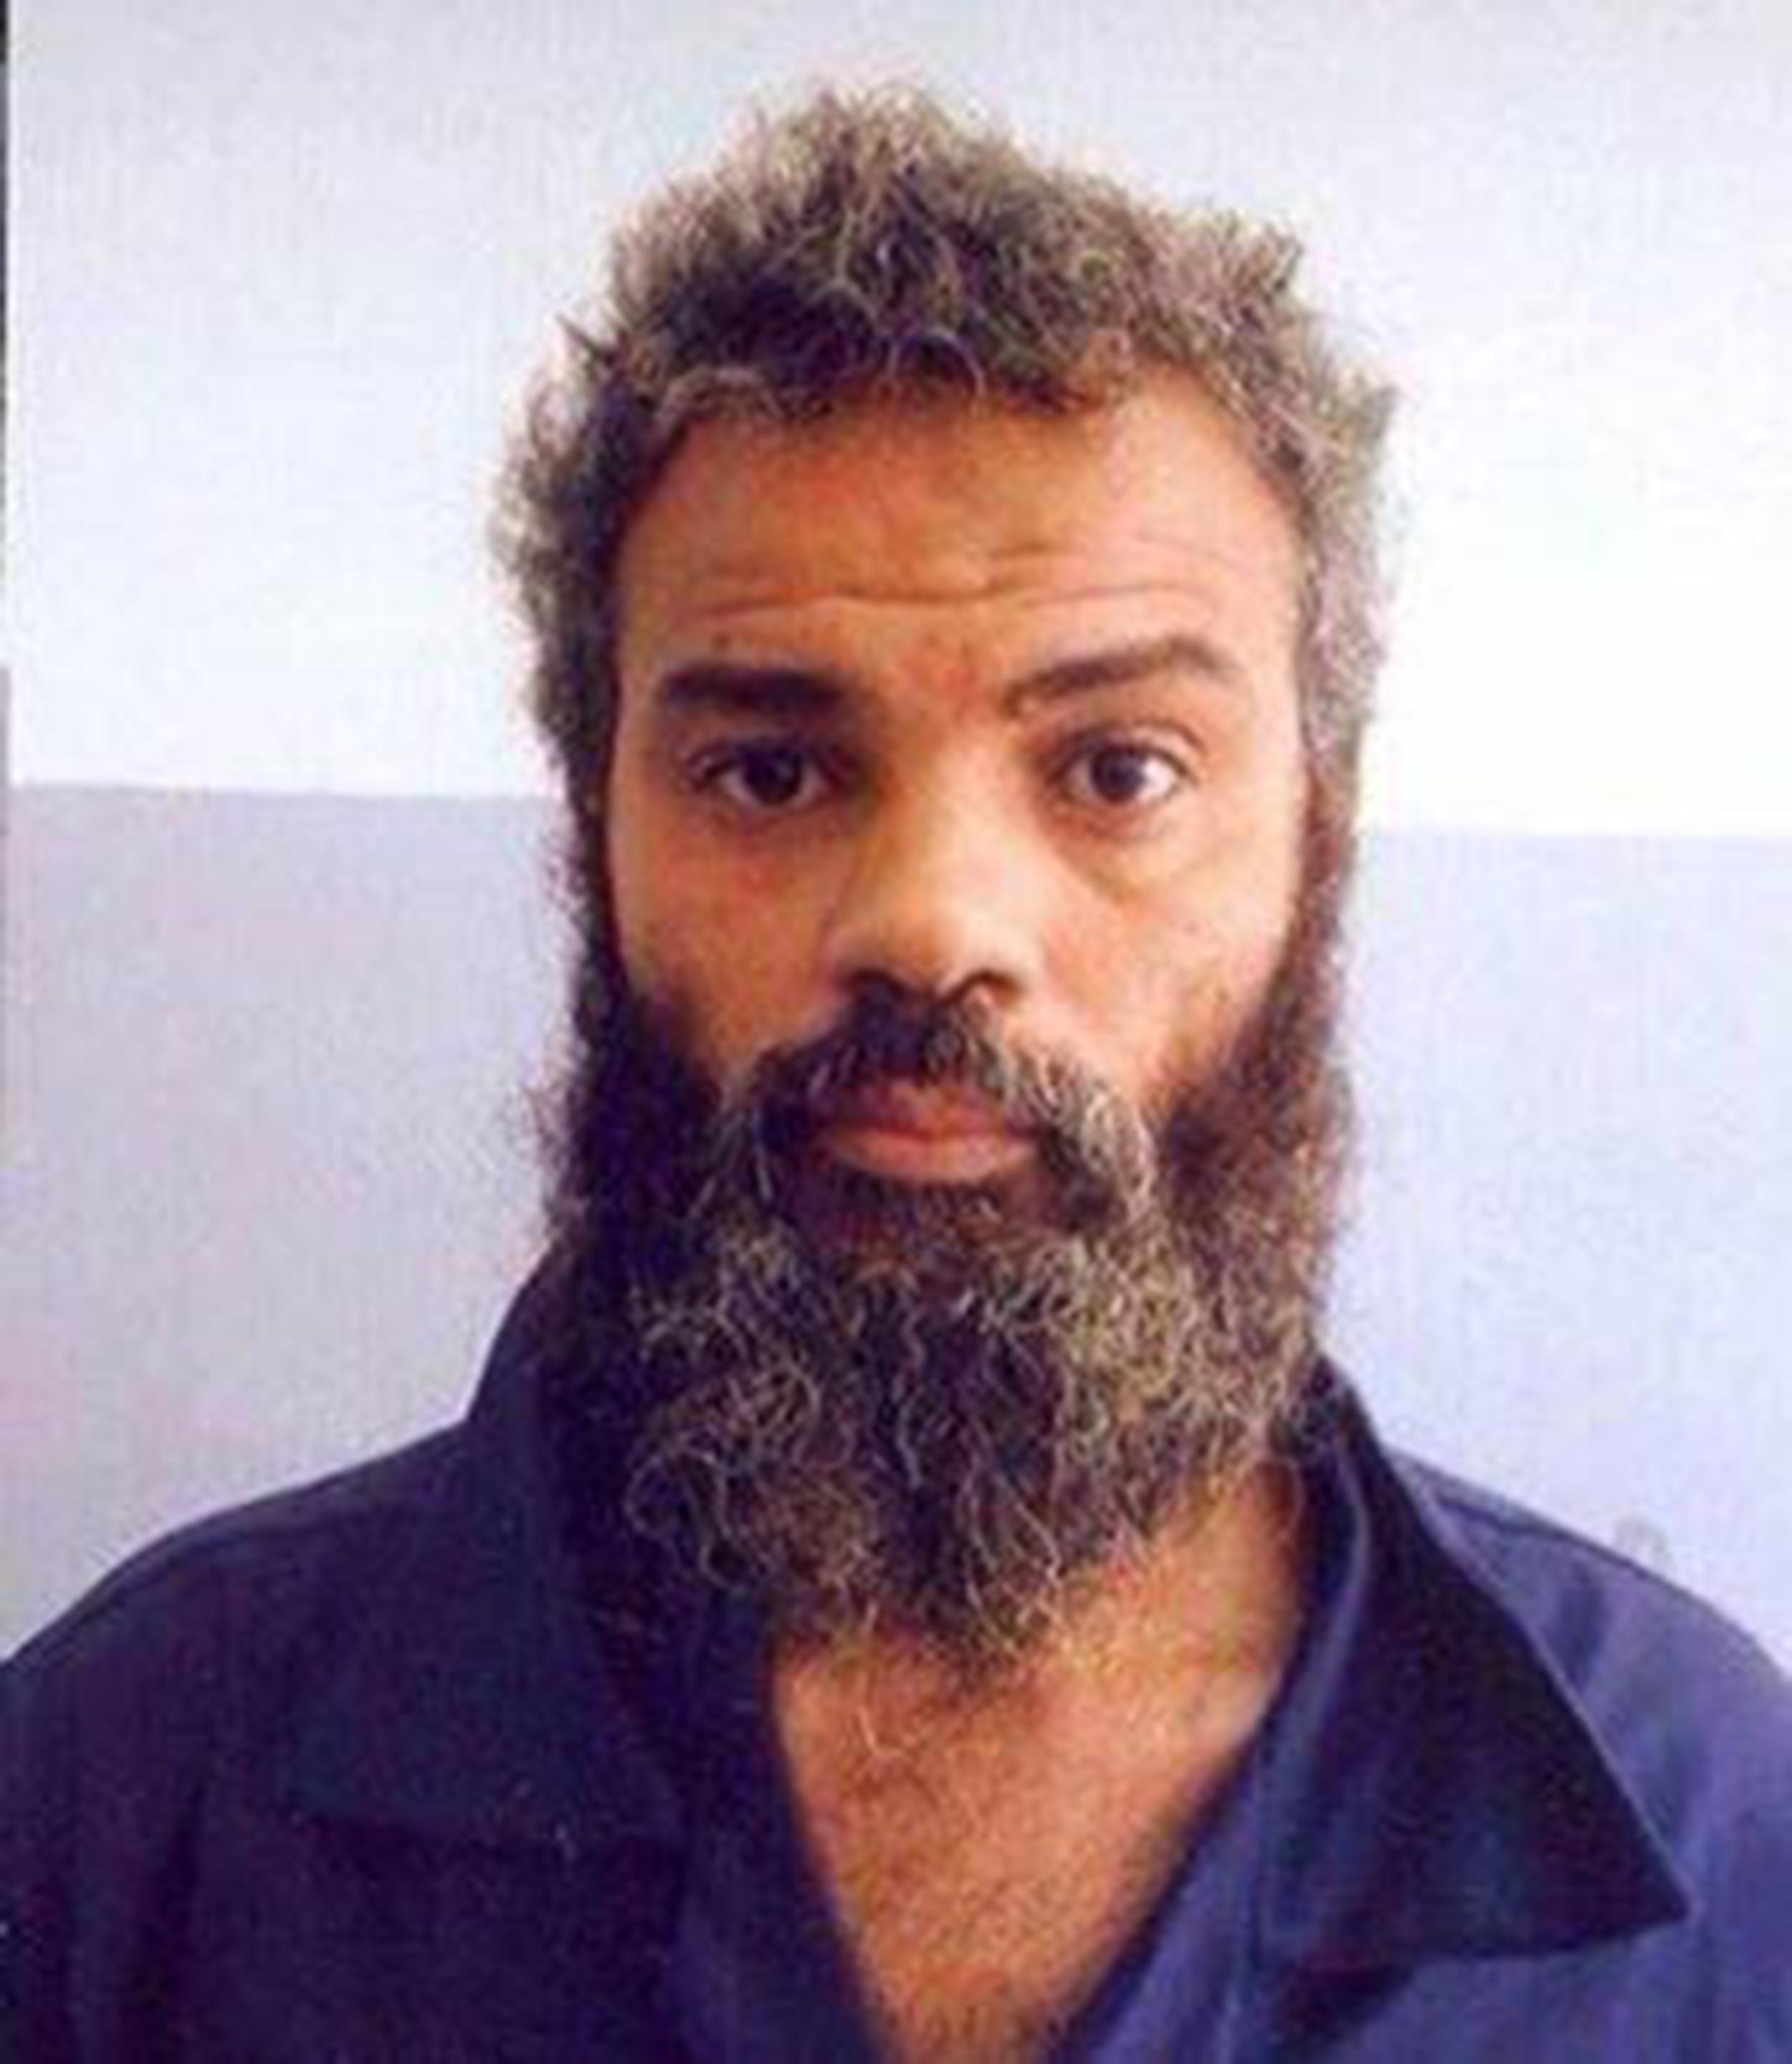 Image: Ahmed Abu Khattala was charged by the U.S. in the attack on the U.S. consulate in Benghazi, Libya.